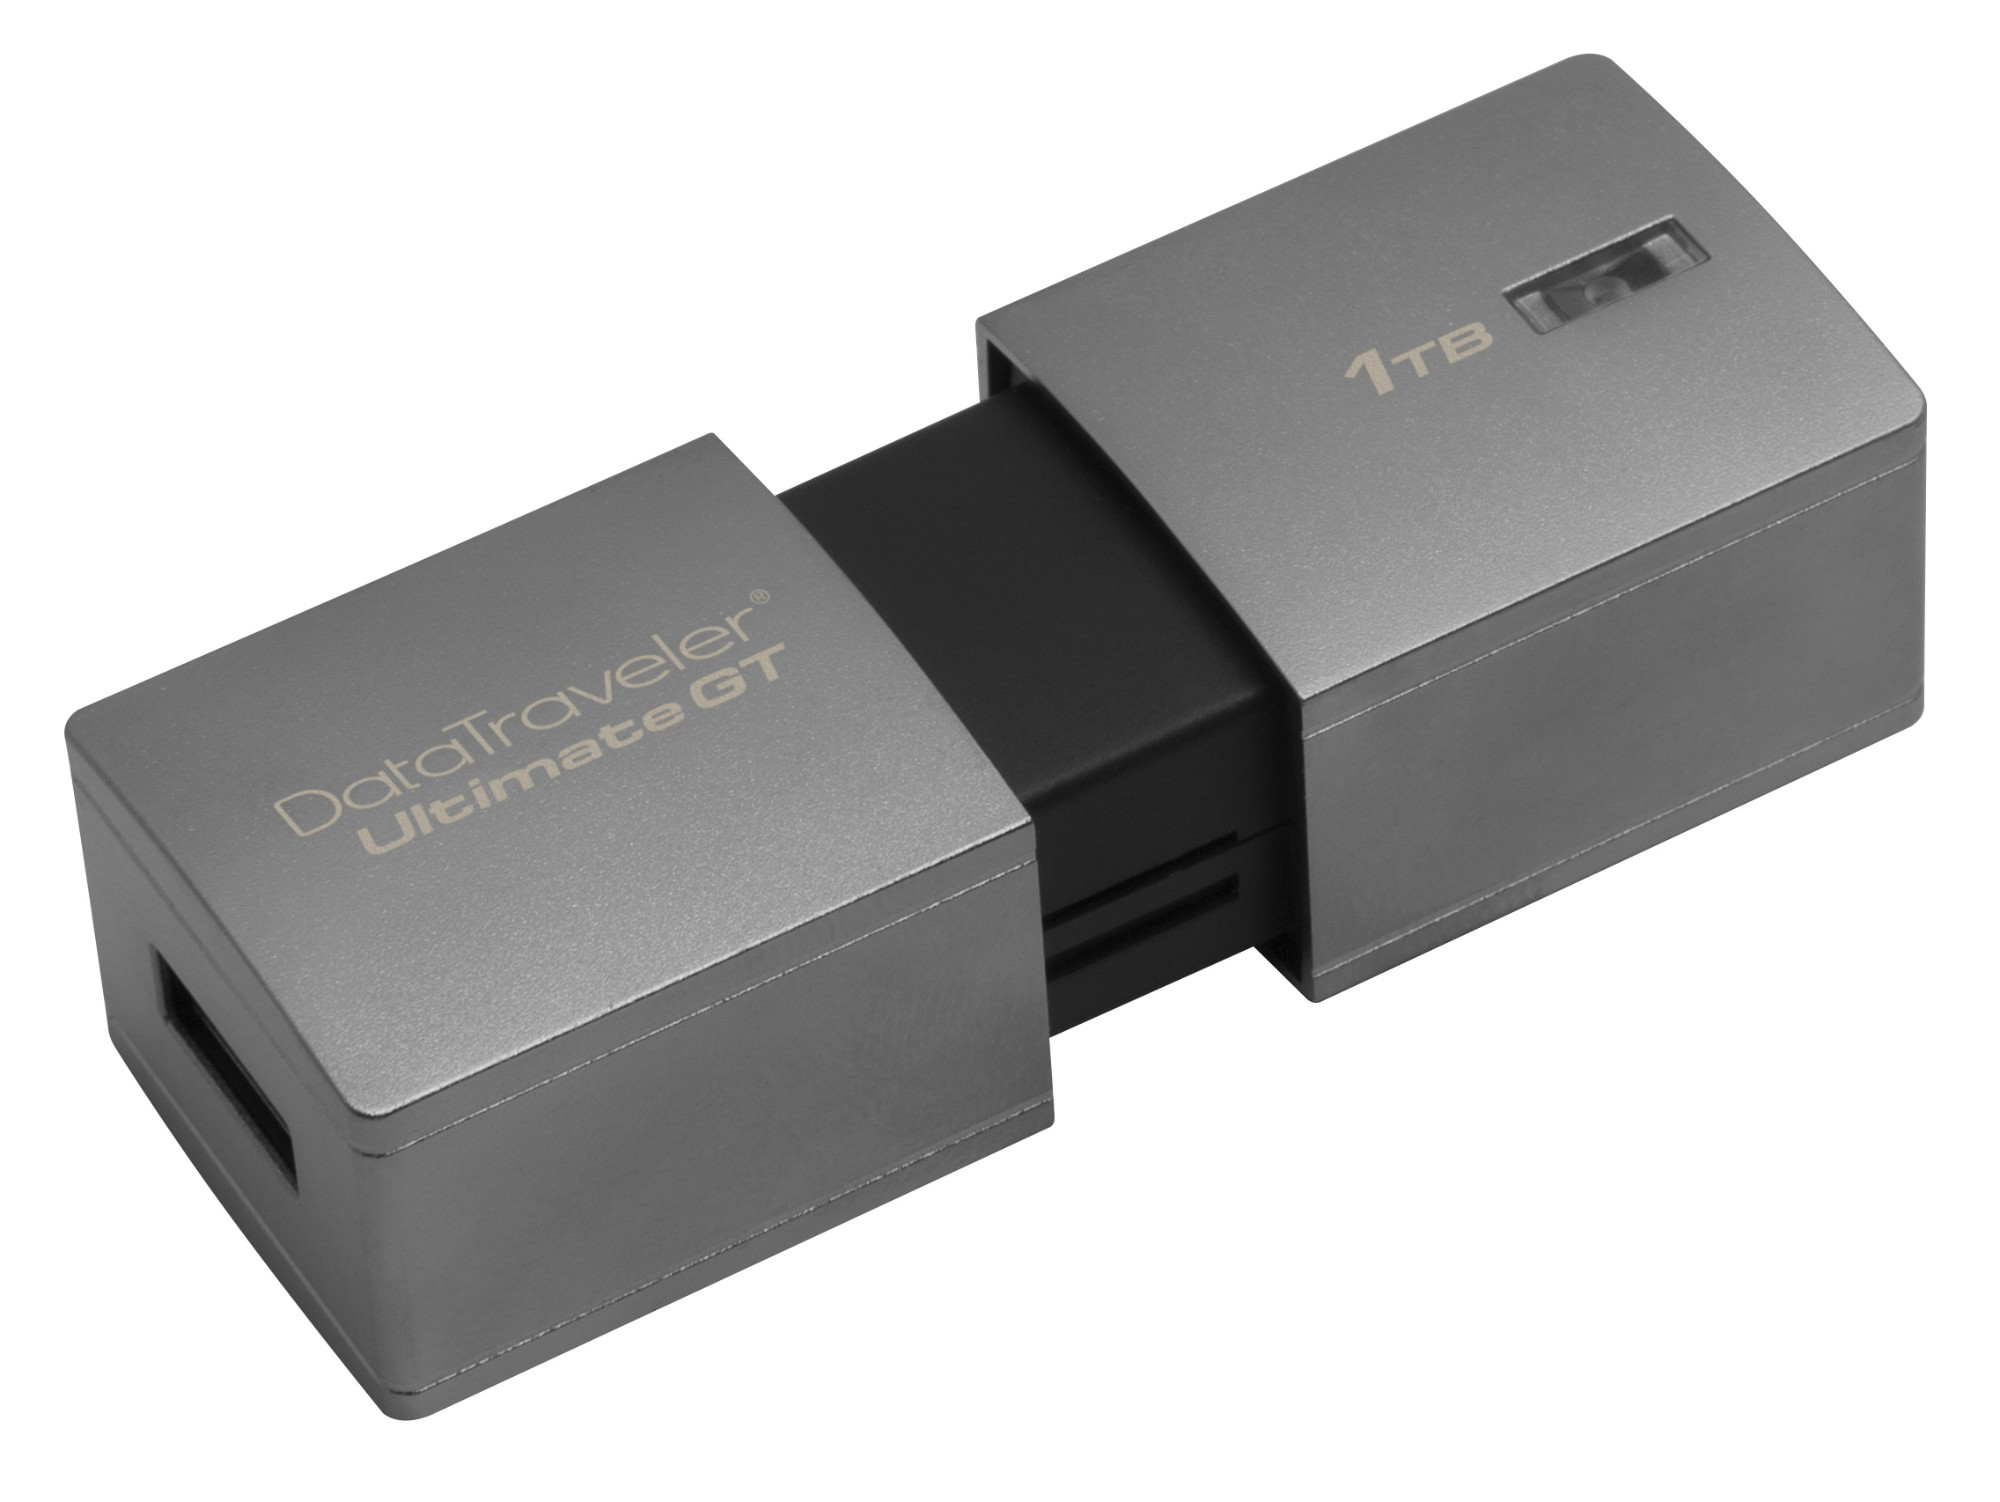 Kingston Technology DataTraveler DTUGT/1TB 1000GB USB 3.0 (3.1 Gen 1) USB Type-A connector Silver USB flash drive